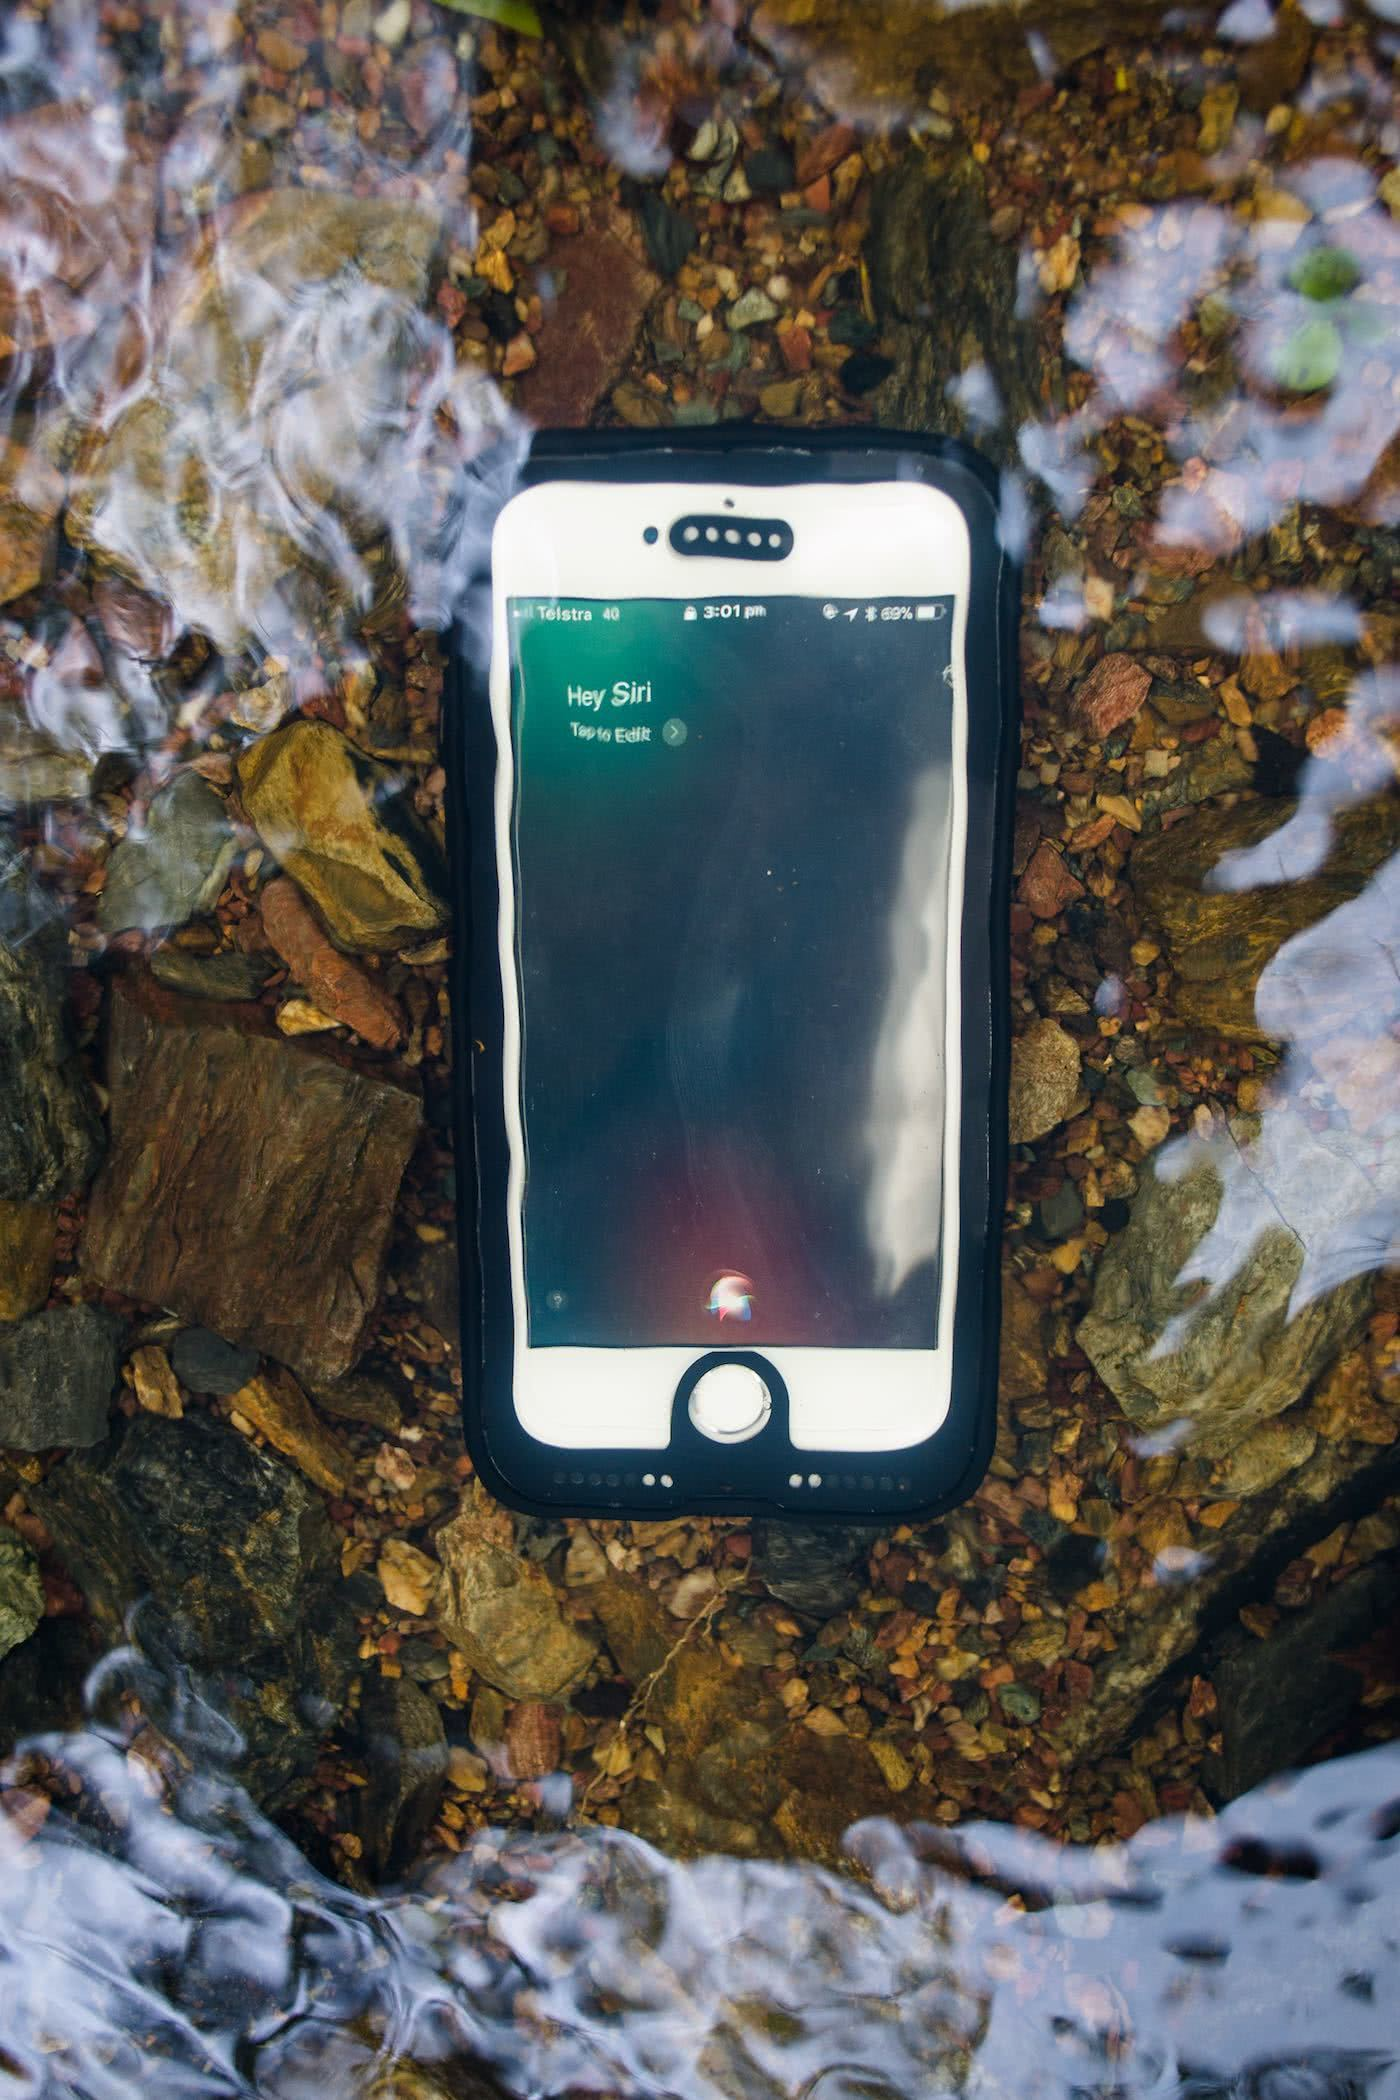 Pelican Marine Phone Case // Gear Review Dan Parkes, phone, case, water, rocks, siri